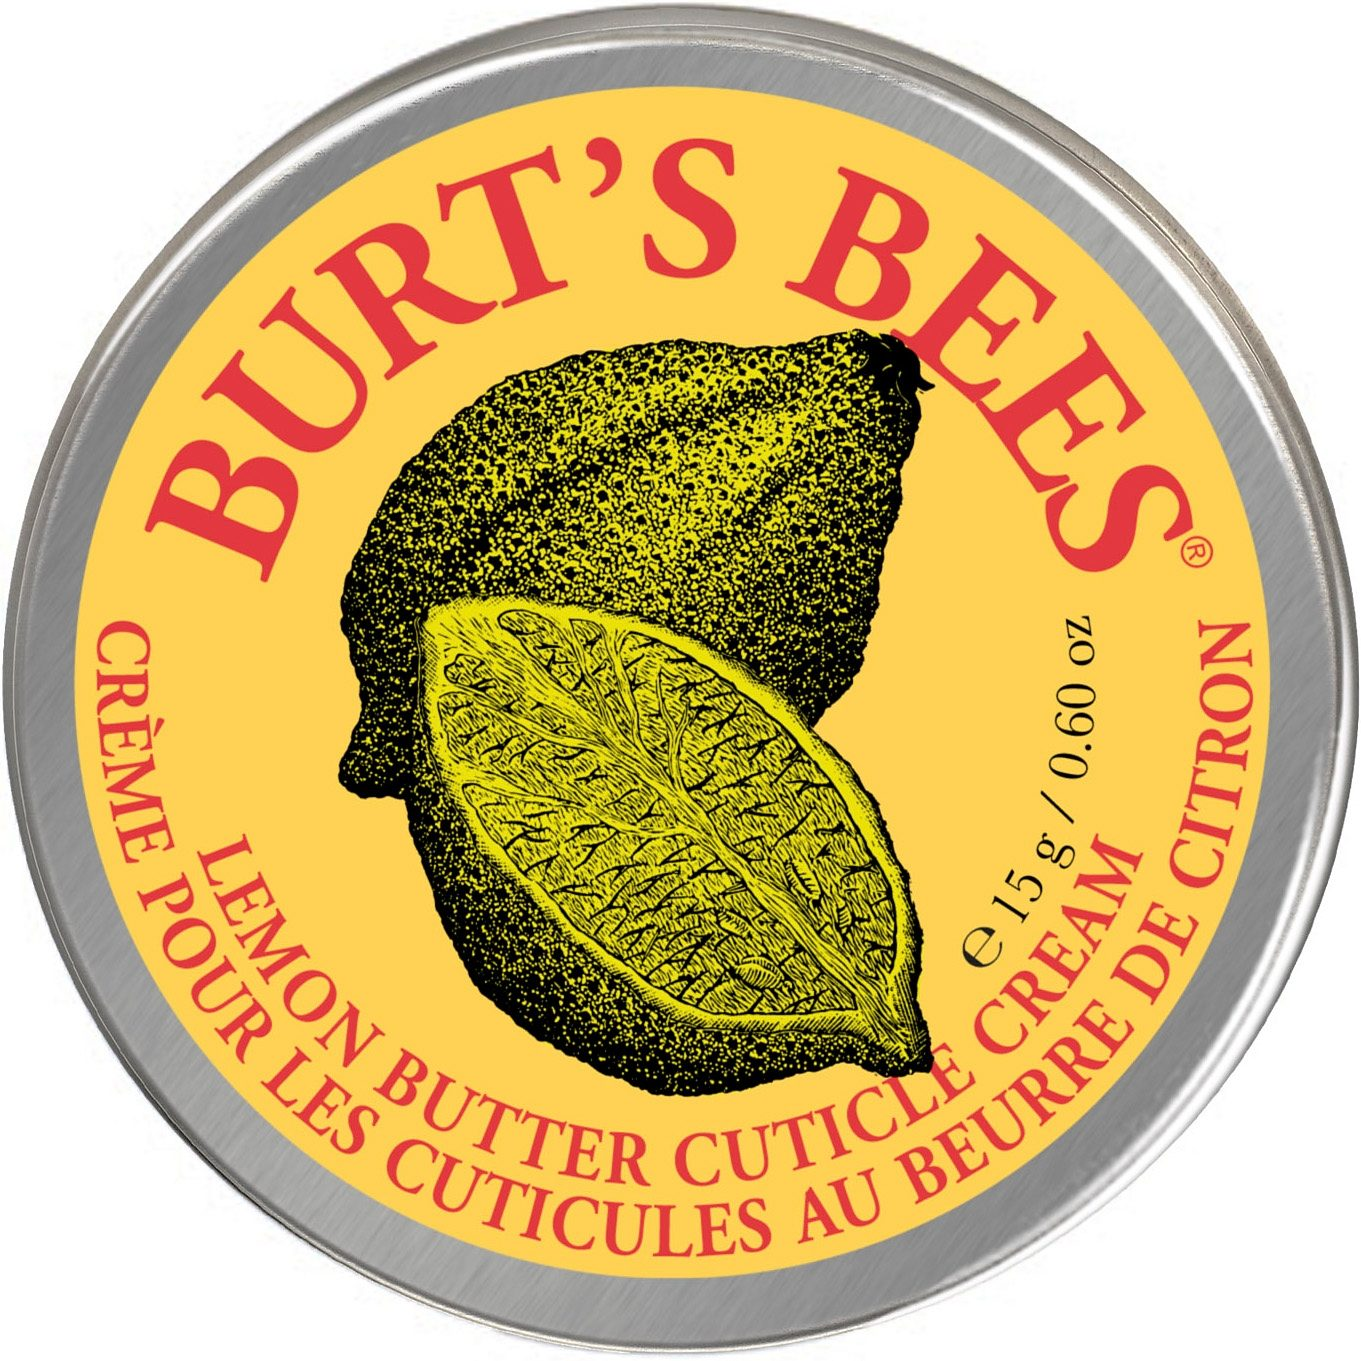 Burt's Bees, »Lemon Butter Cuticle Cream«, Nagelhautcreme, 15g